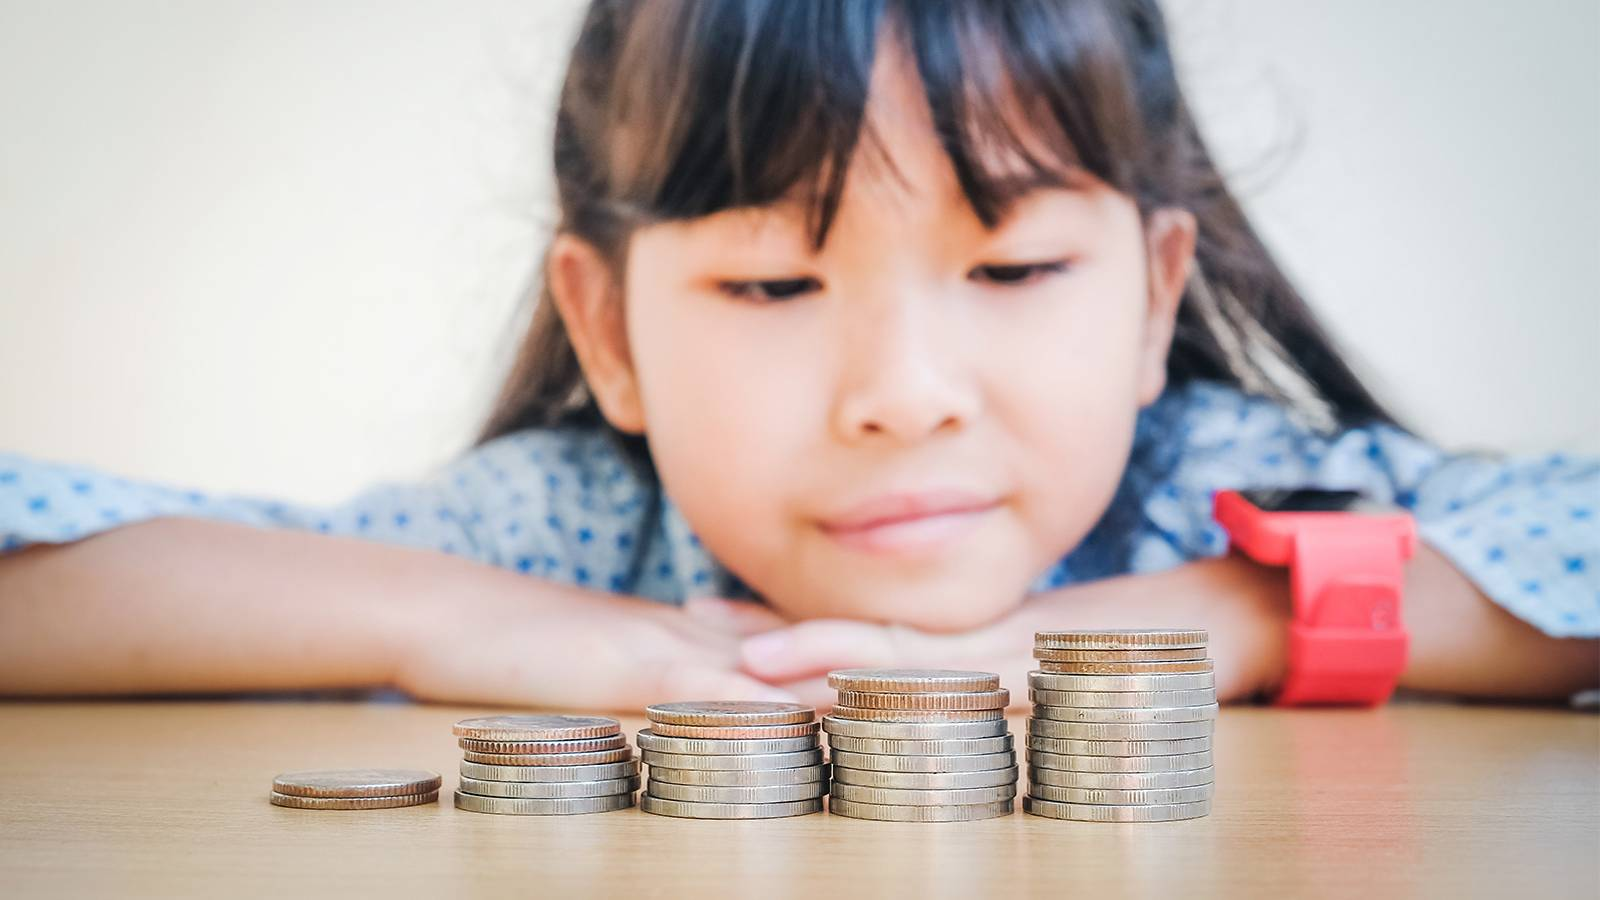 Kids-4-money-questions-junior-will-ask-and-how-to-answer-them-MAIN